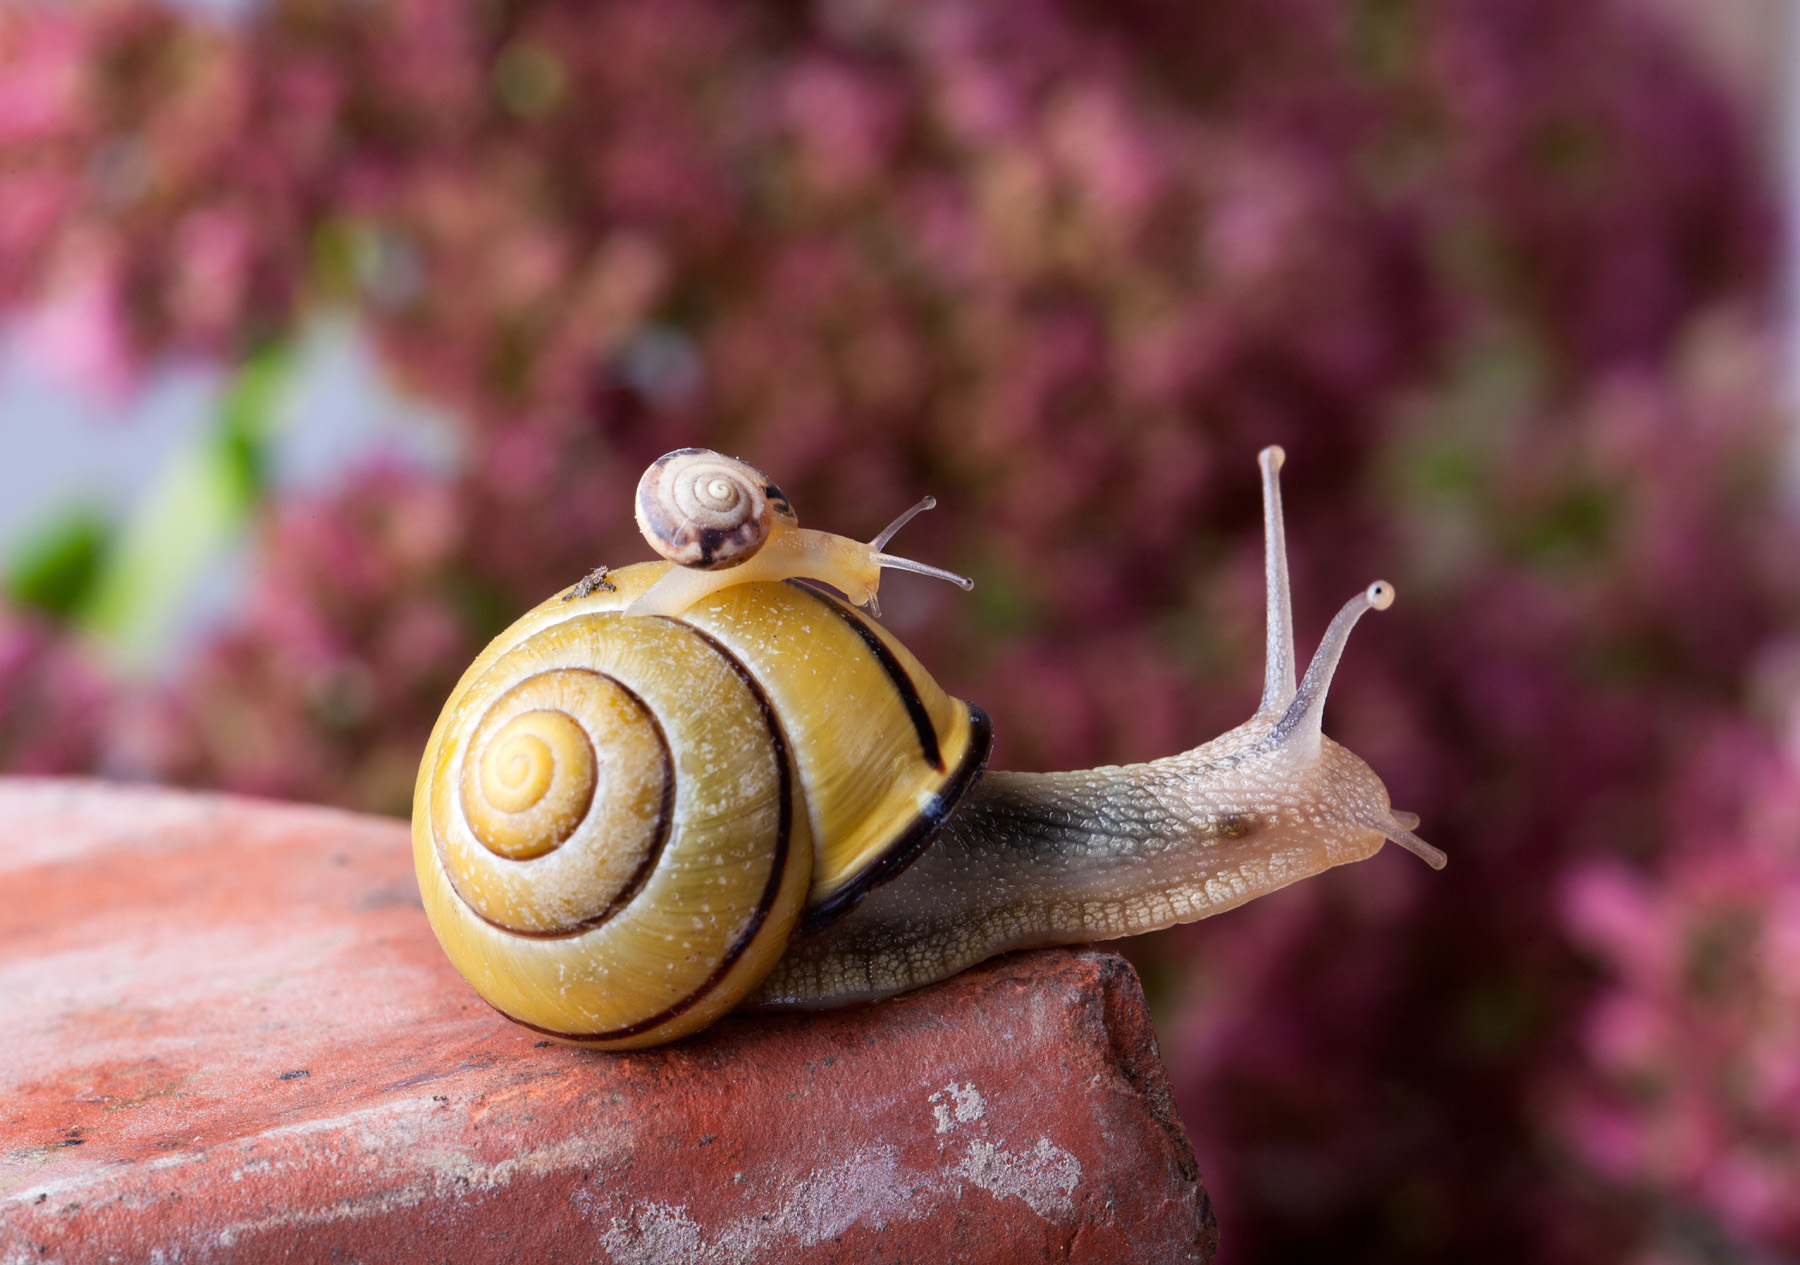 Carrying small snails snails 51680